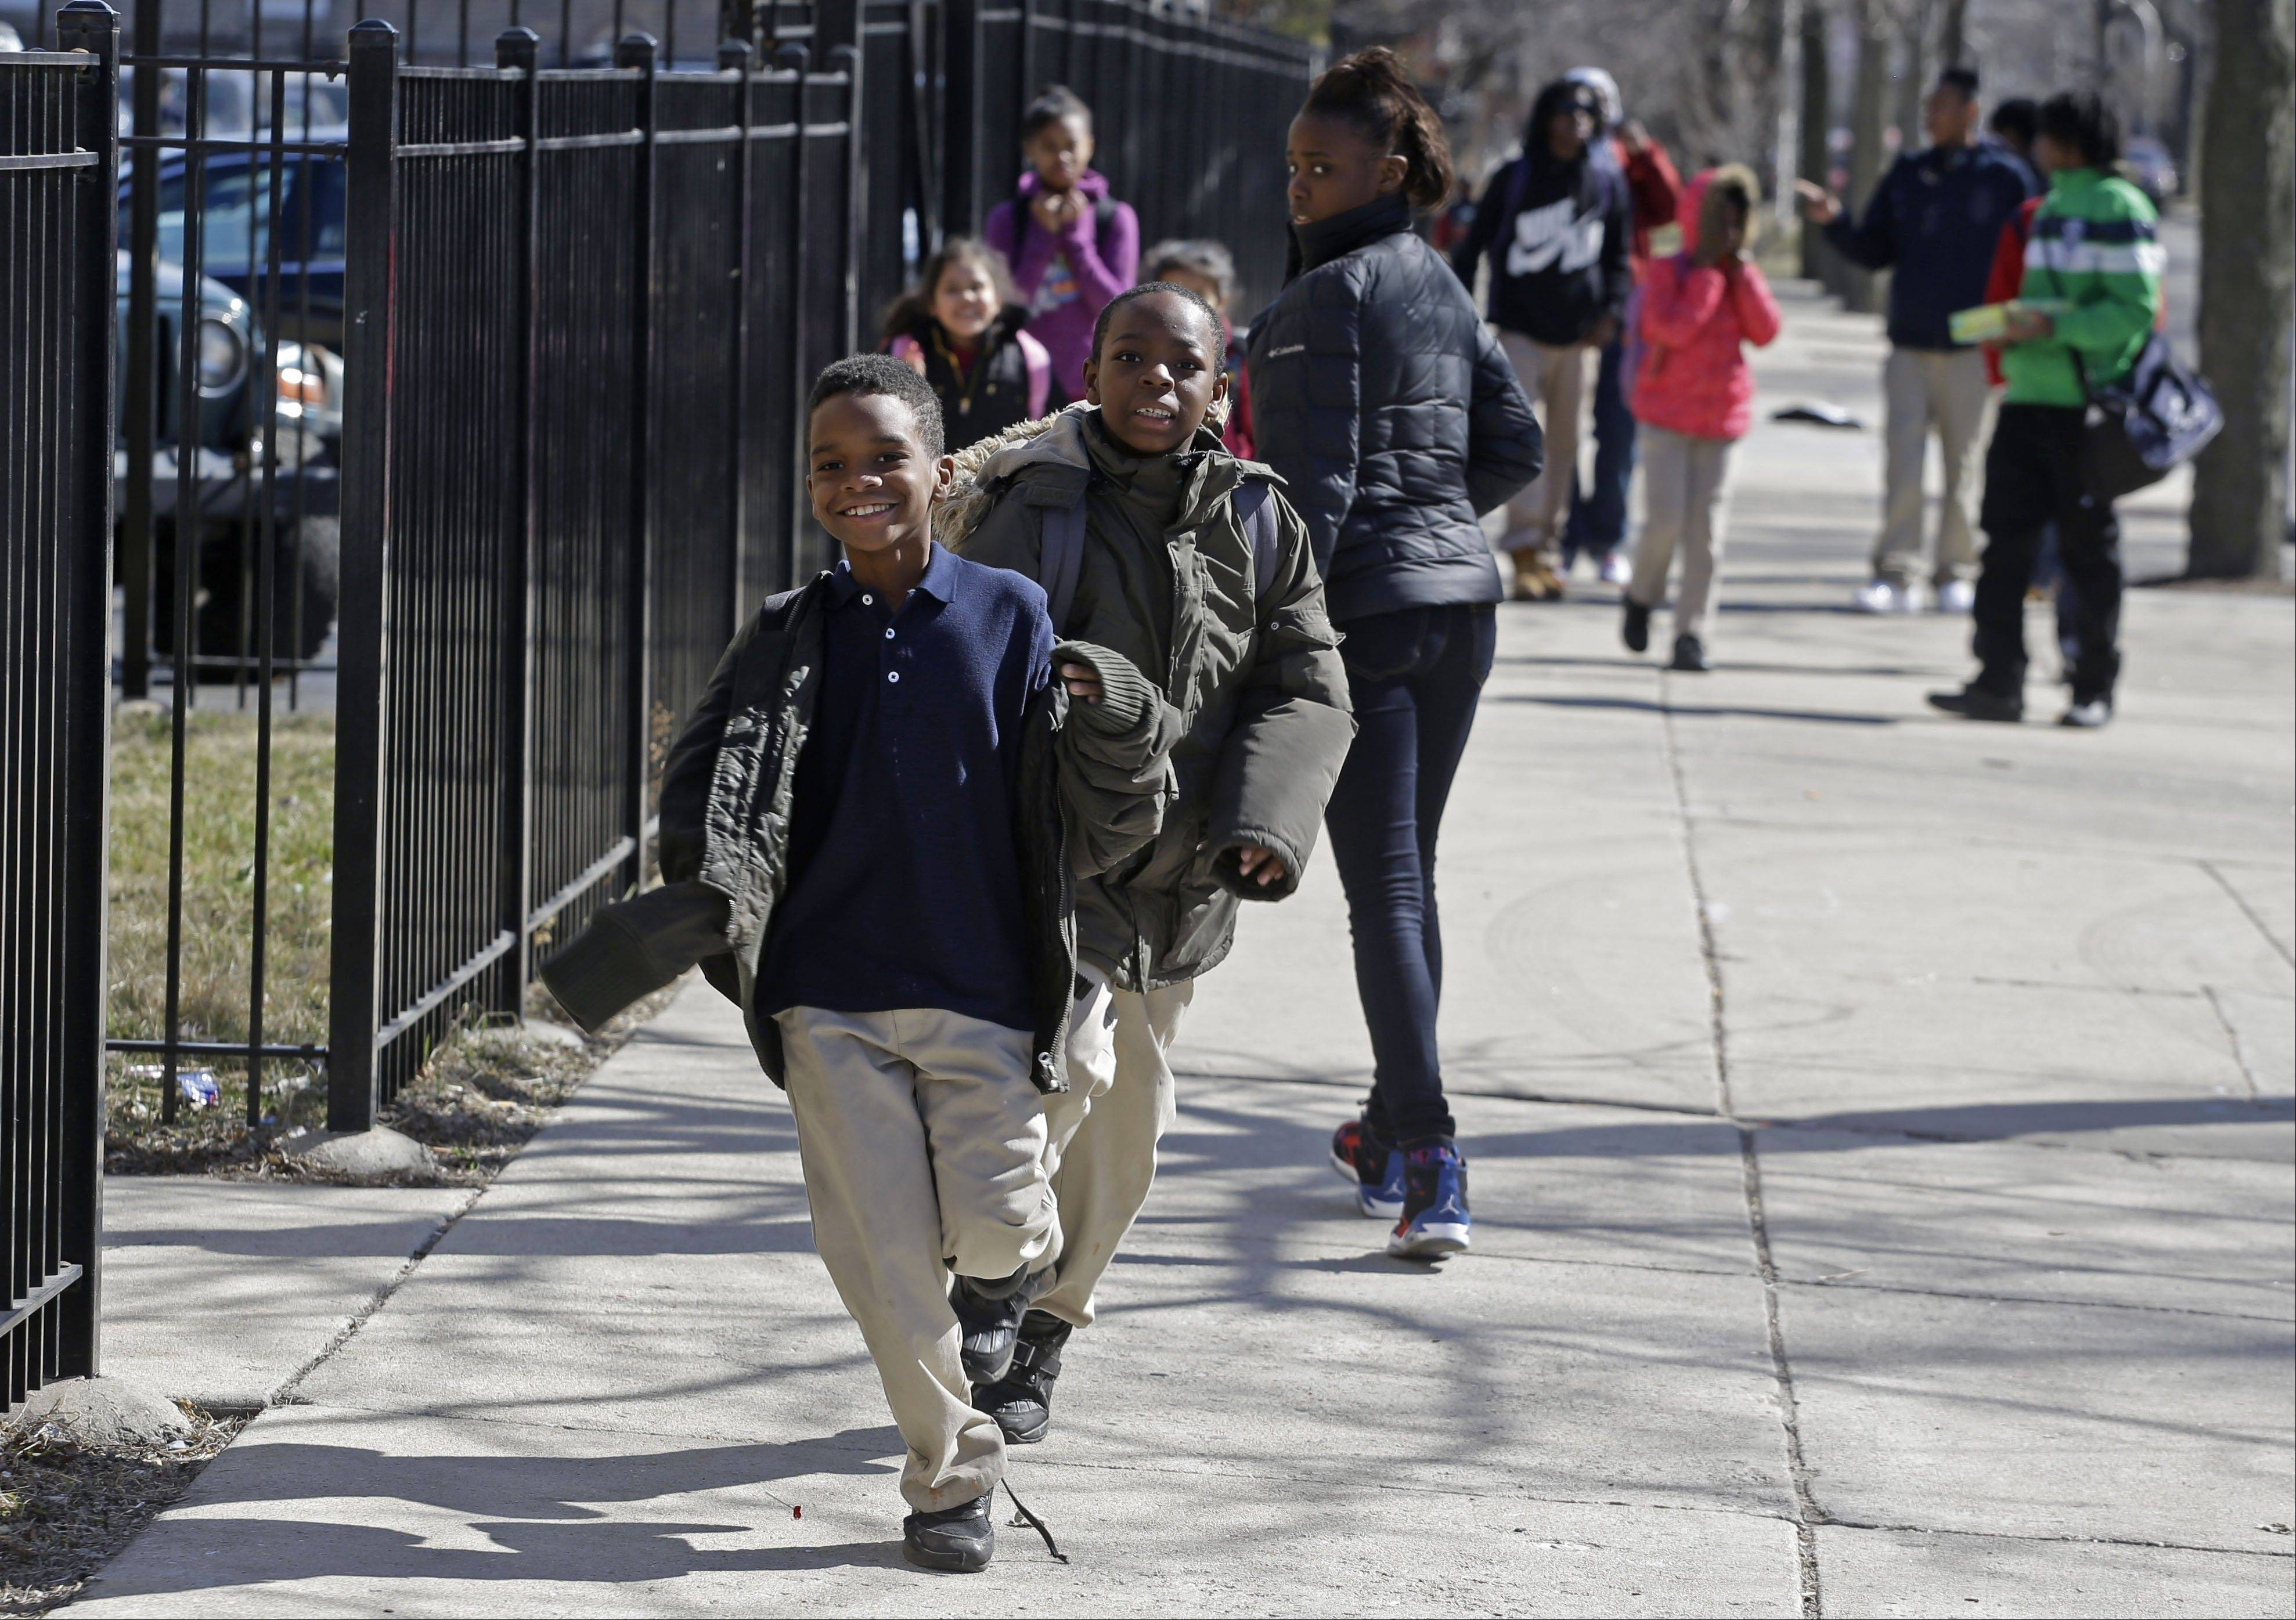 Children leave Dvorak Technology Academy in Chicago at the end of classes on April 3. While the school serves as a safe haven for children during classroom hours, their journeys to and from home are subject to peril as they cross gang borders that divide the city's neighborhoods.